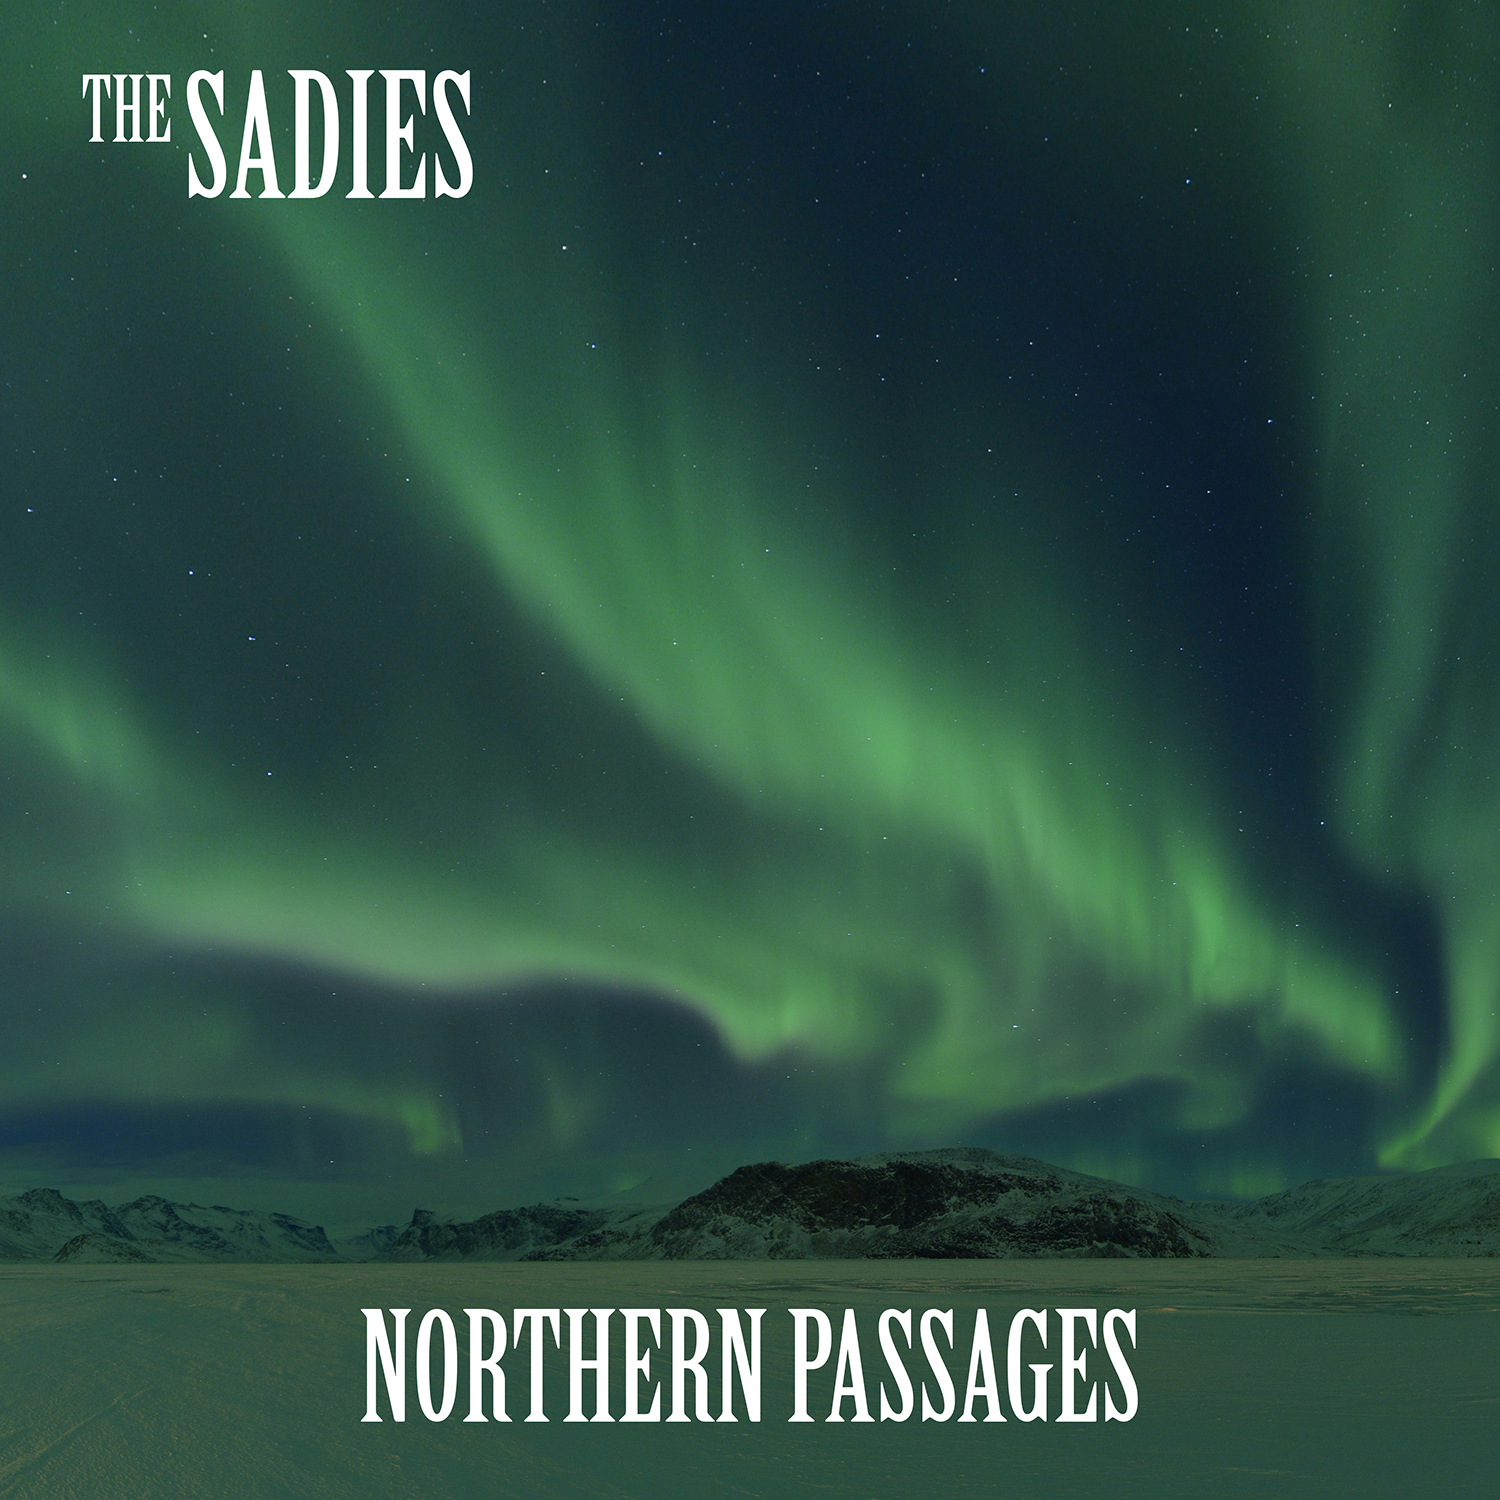 Bilderesultat for sadies northern passages